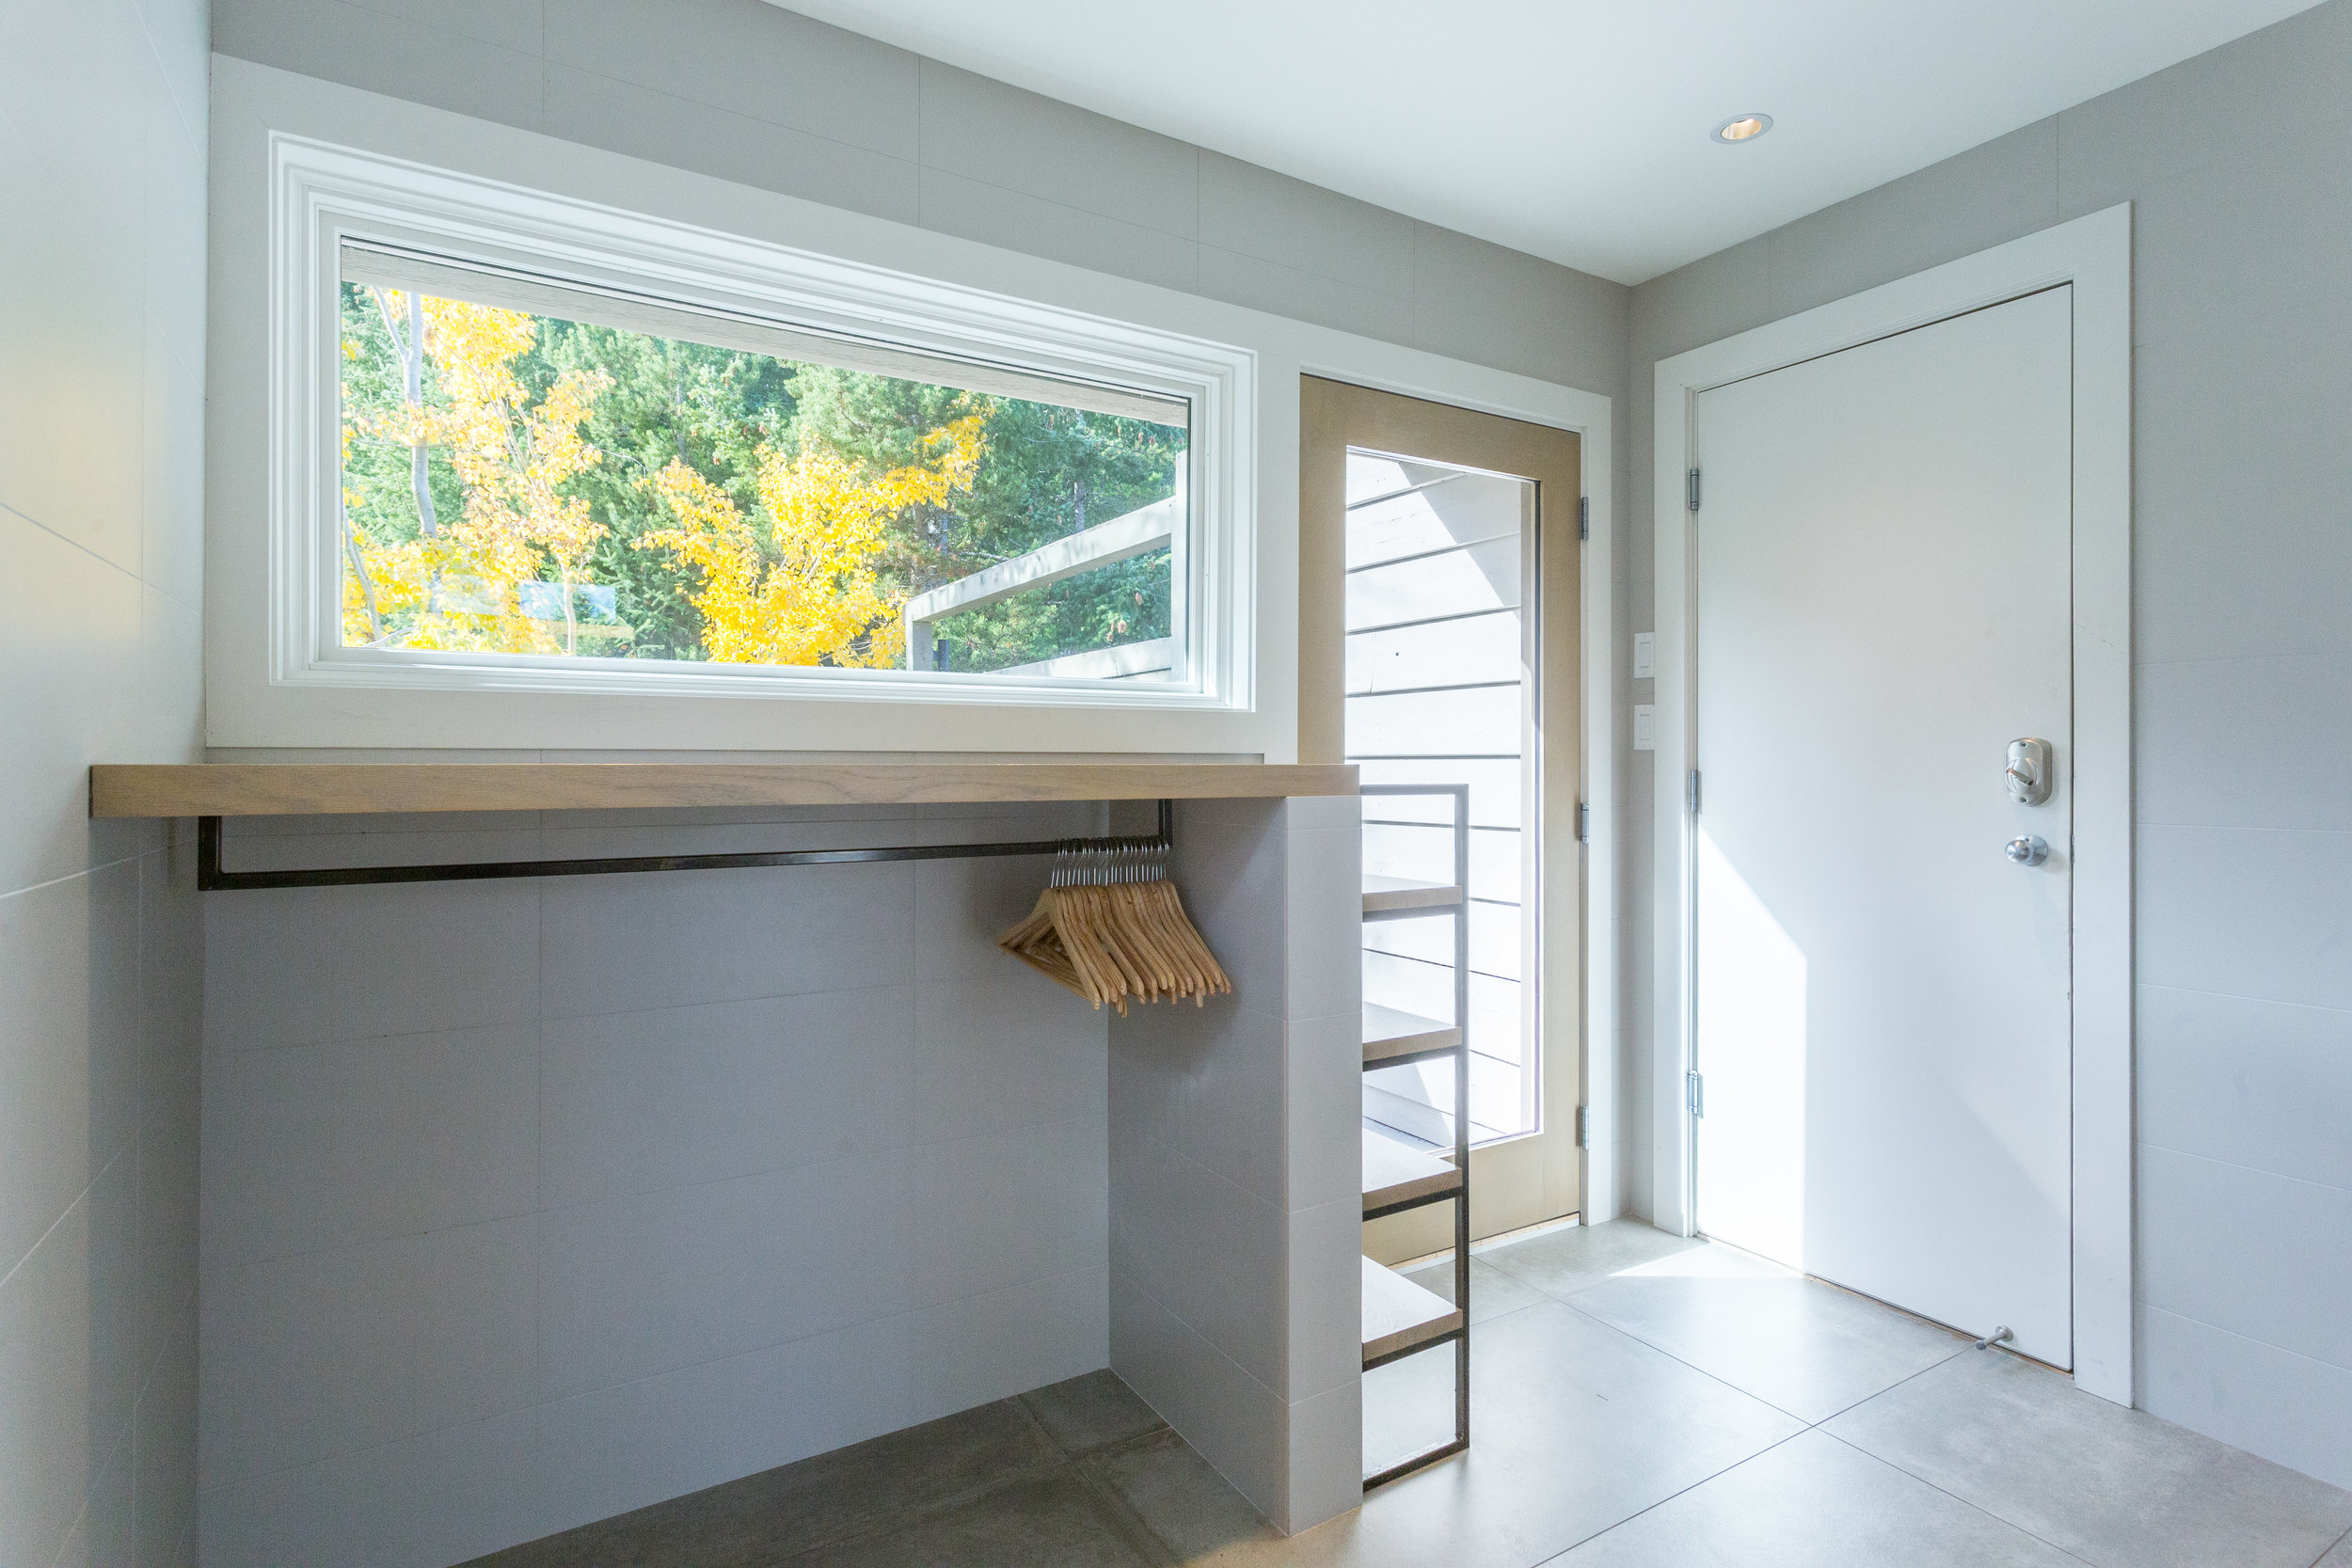 Night Hawk Lane - The mudroom for your boots and jackets